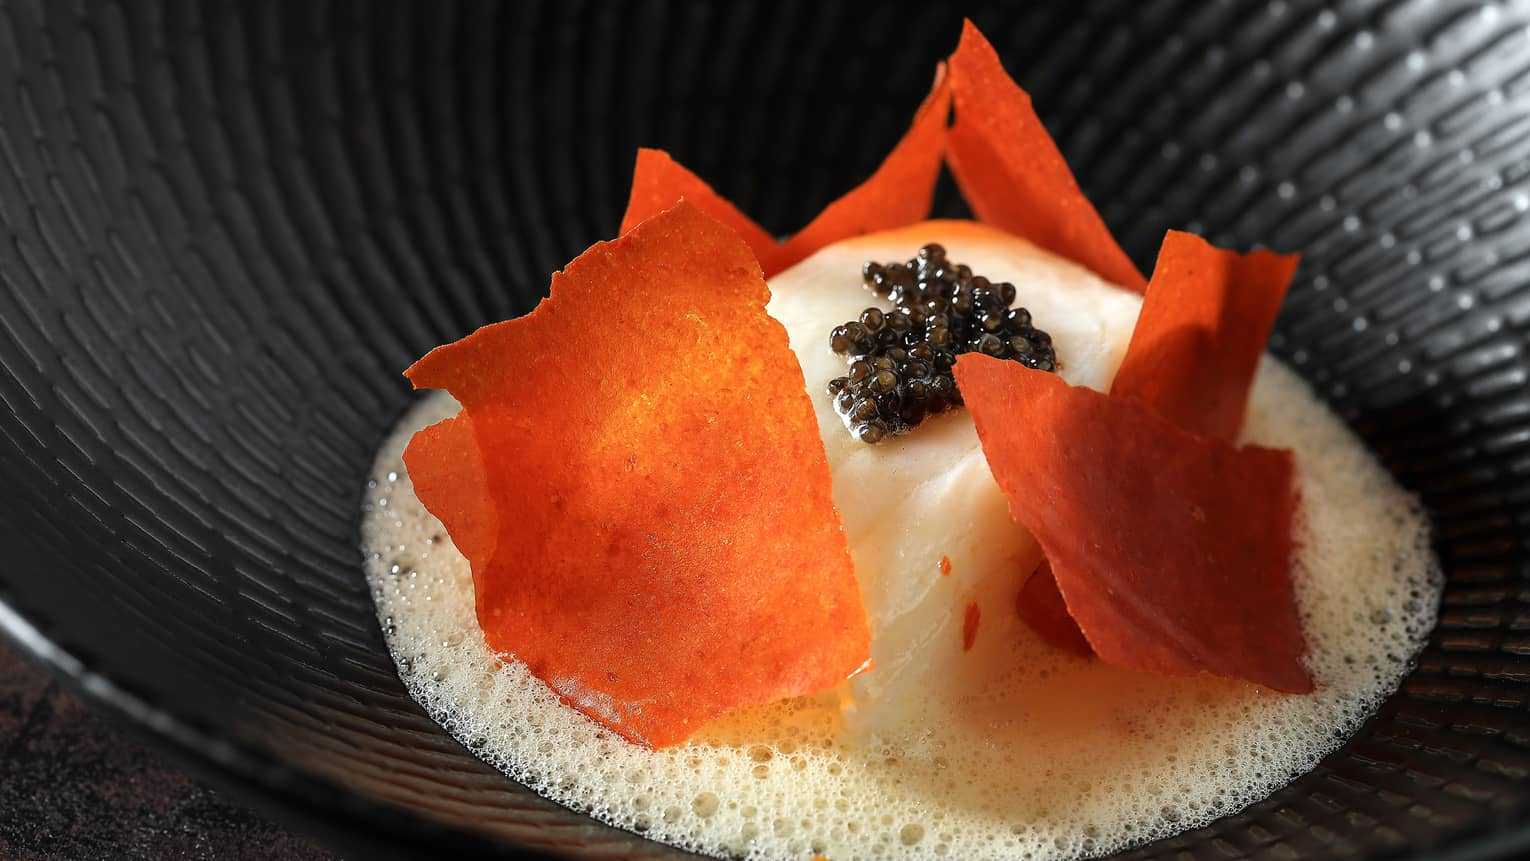 Alaskan Black Cod white fish filet topped with orange dried pepper, black caviar